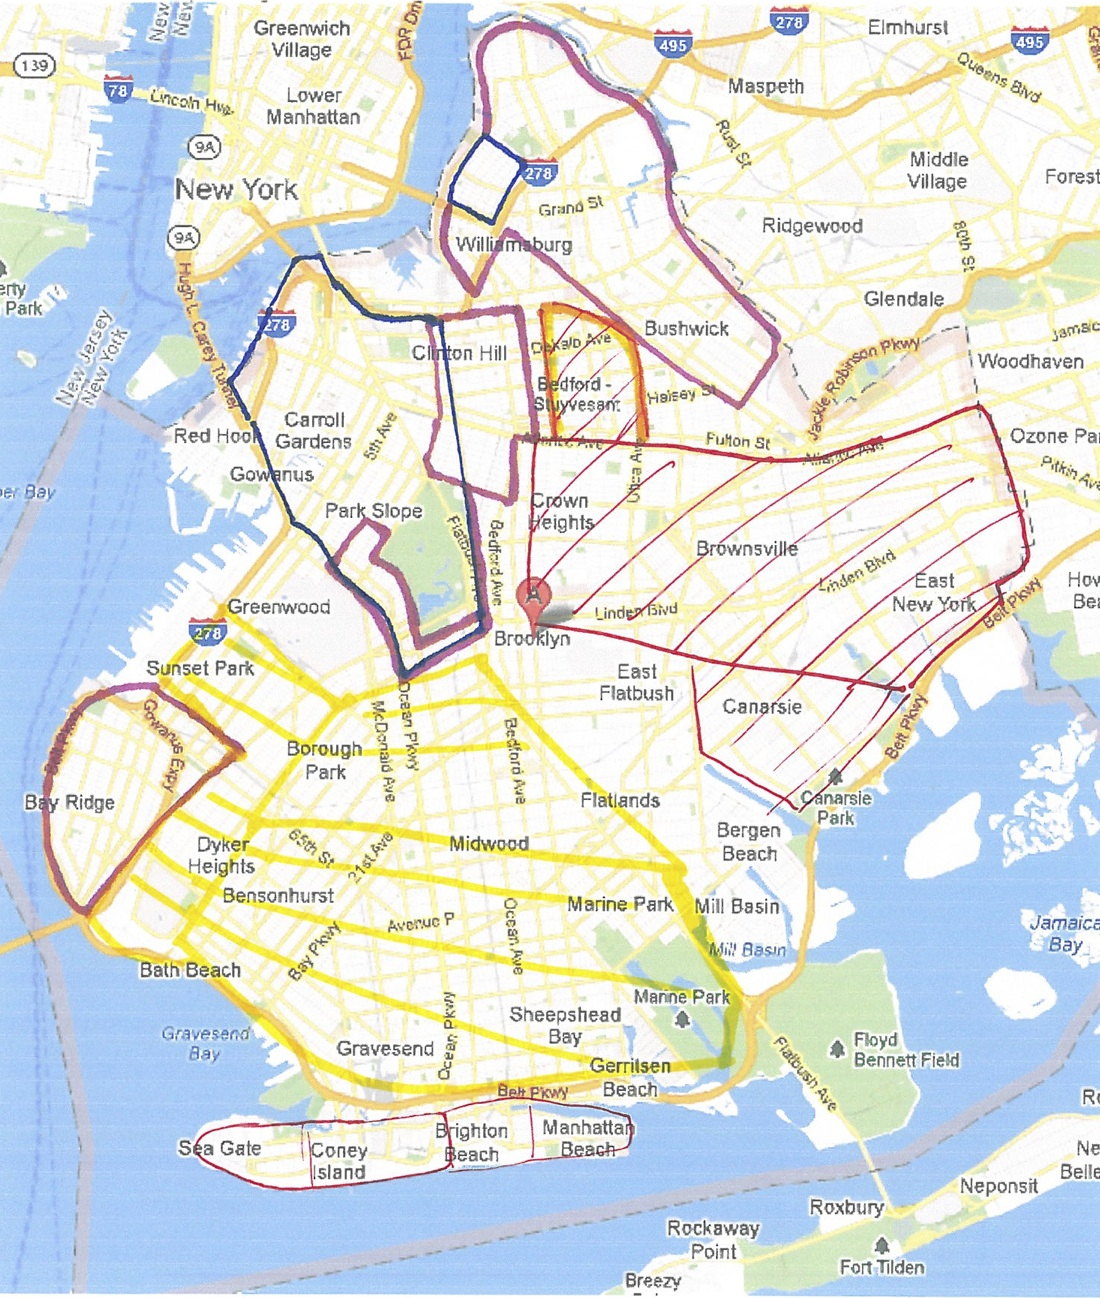 Map Of Neighborhoods To Avoid In Brooklyn New York Pinterest - Nyc map with neighborhoods